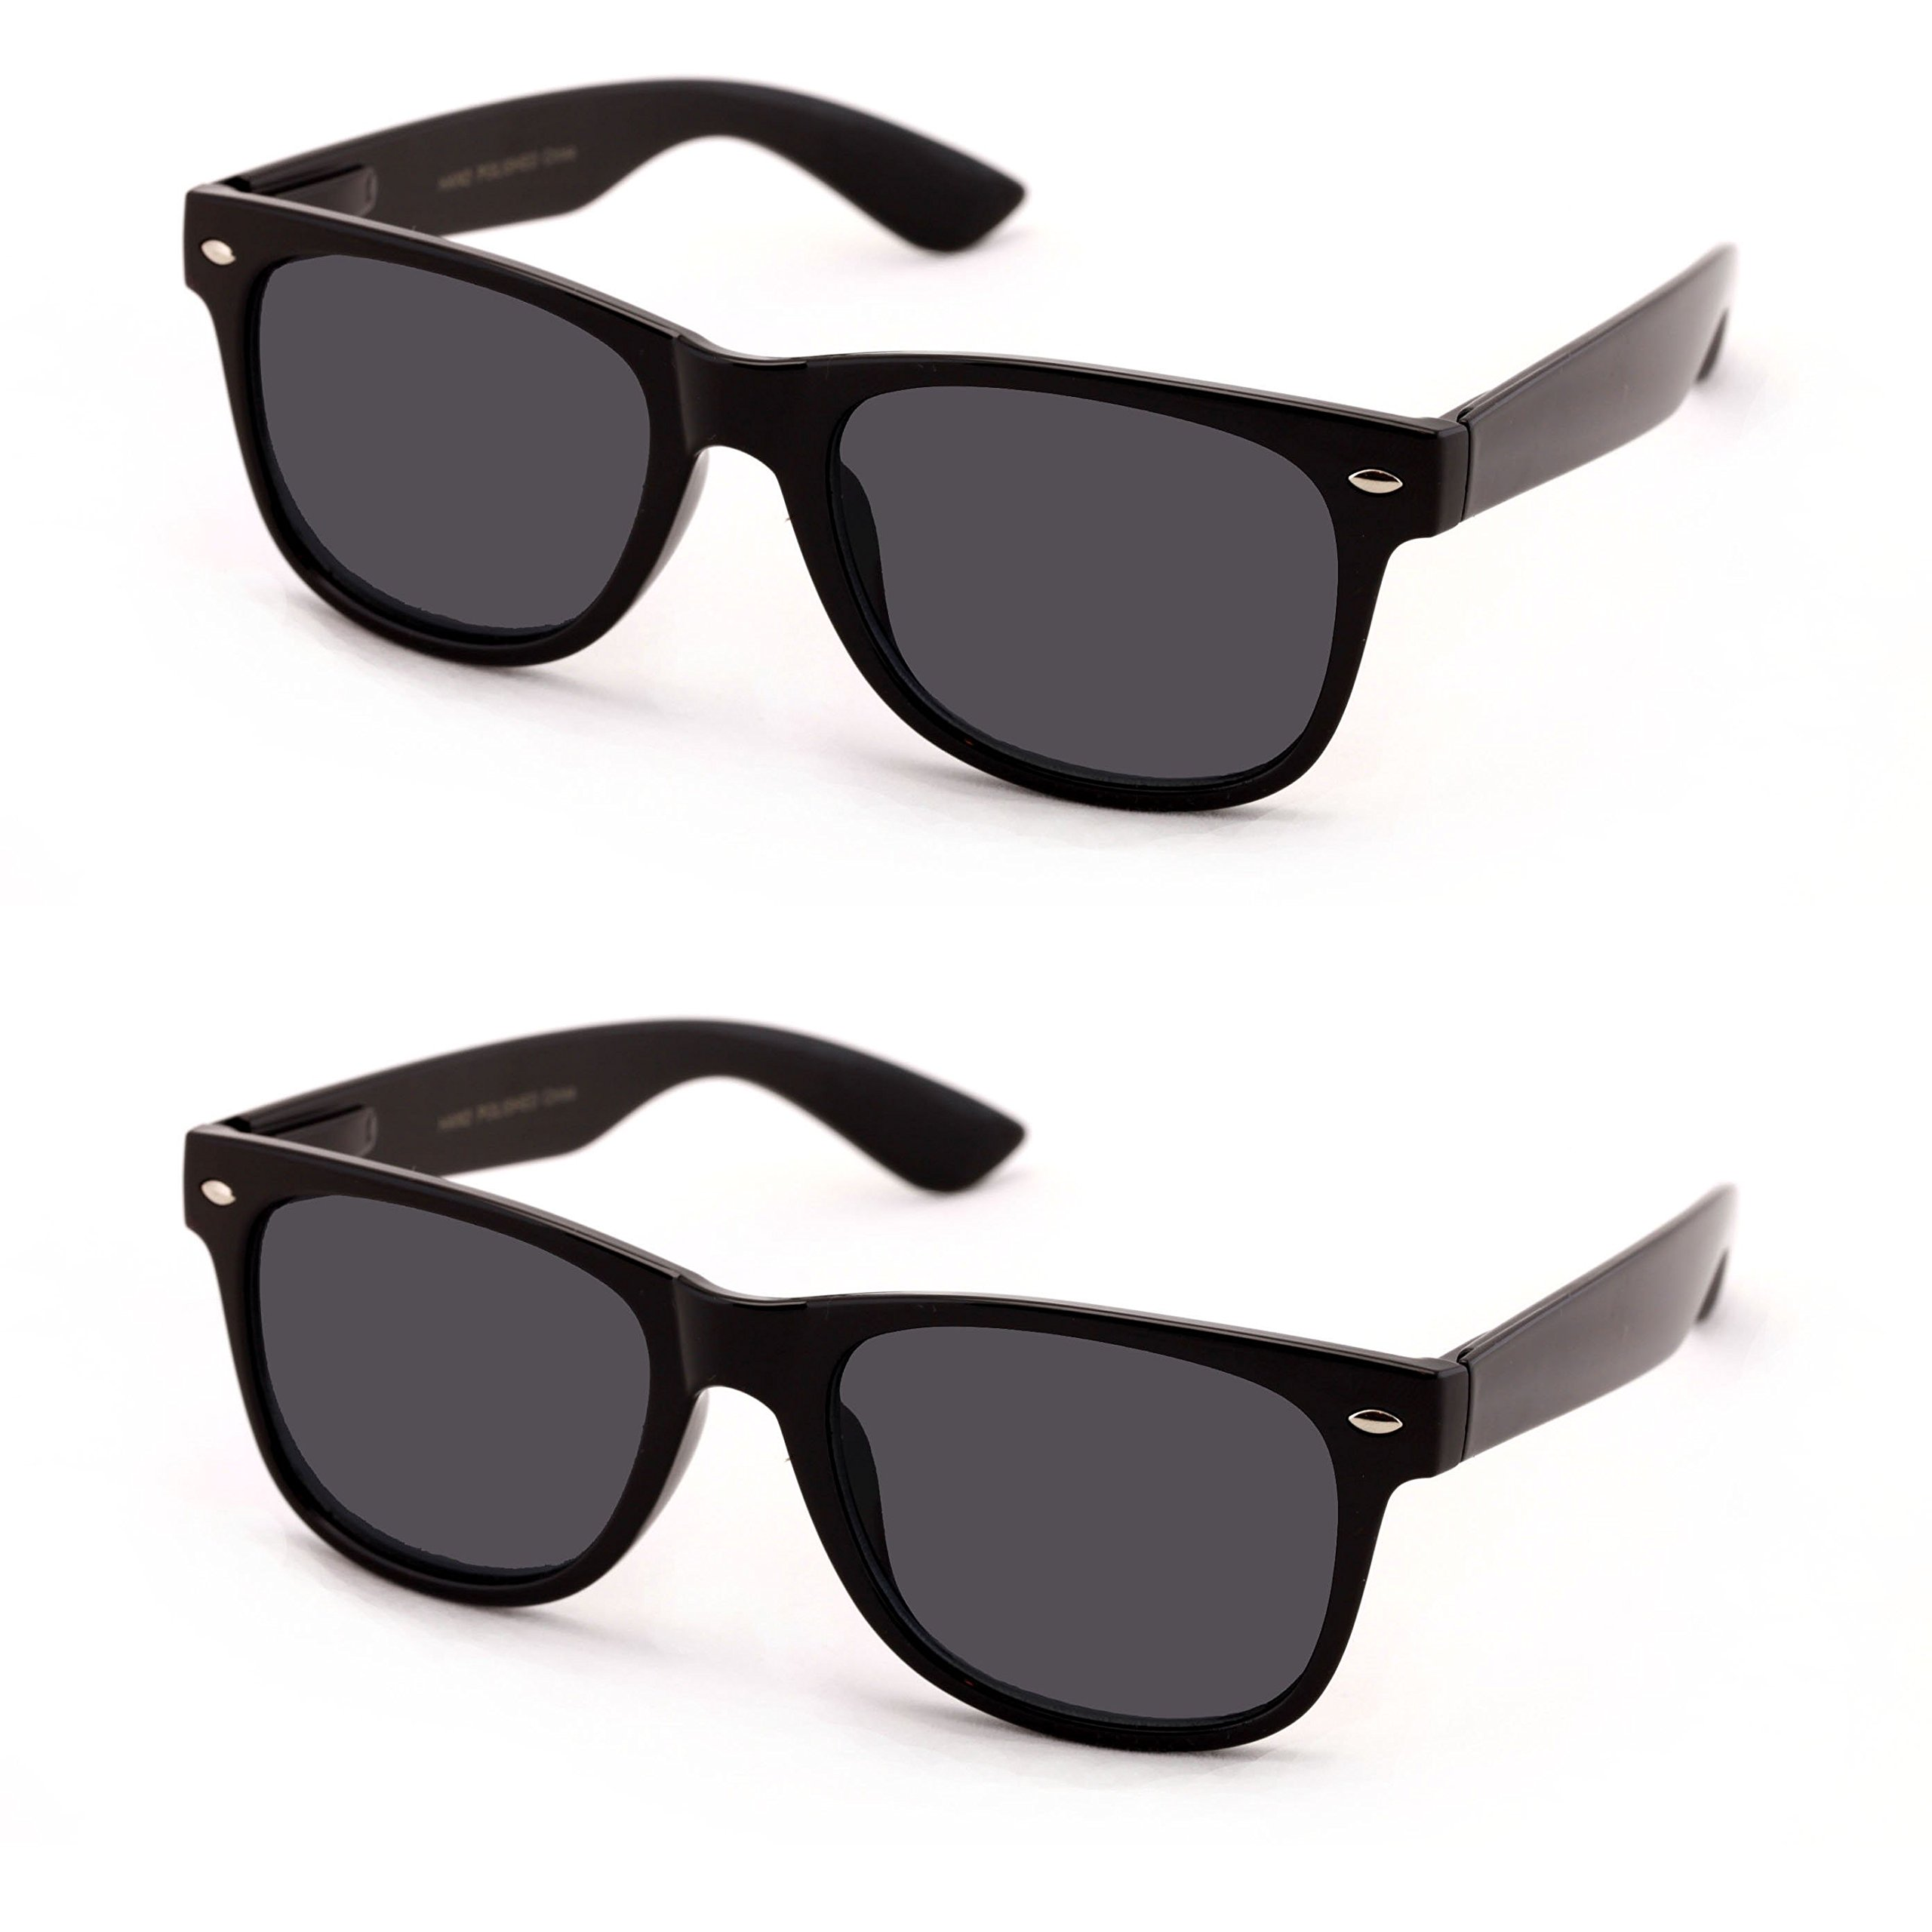 V.W.E Classic Outdoor Reading Sunglasses - Comfortable Stylish Simple Readers Rx Magnification - Not Bifocal (2 pairs black frame black lens, +1.50)